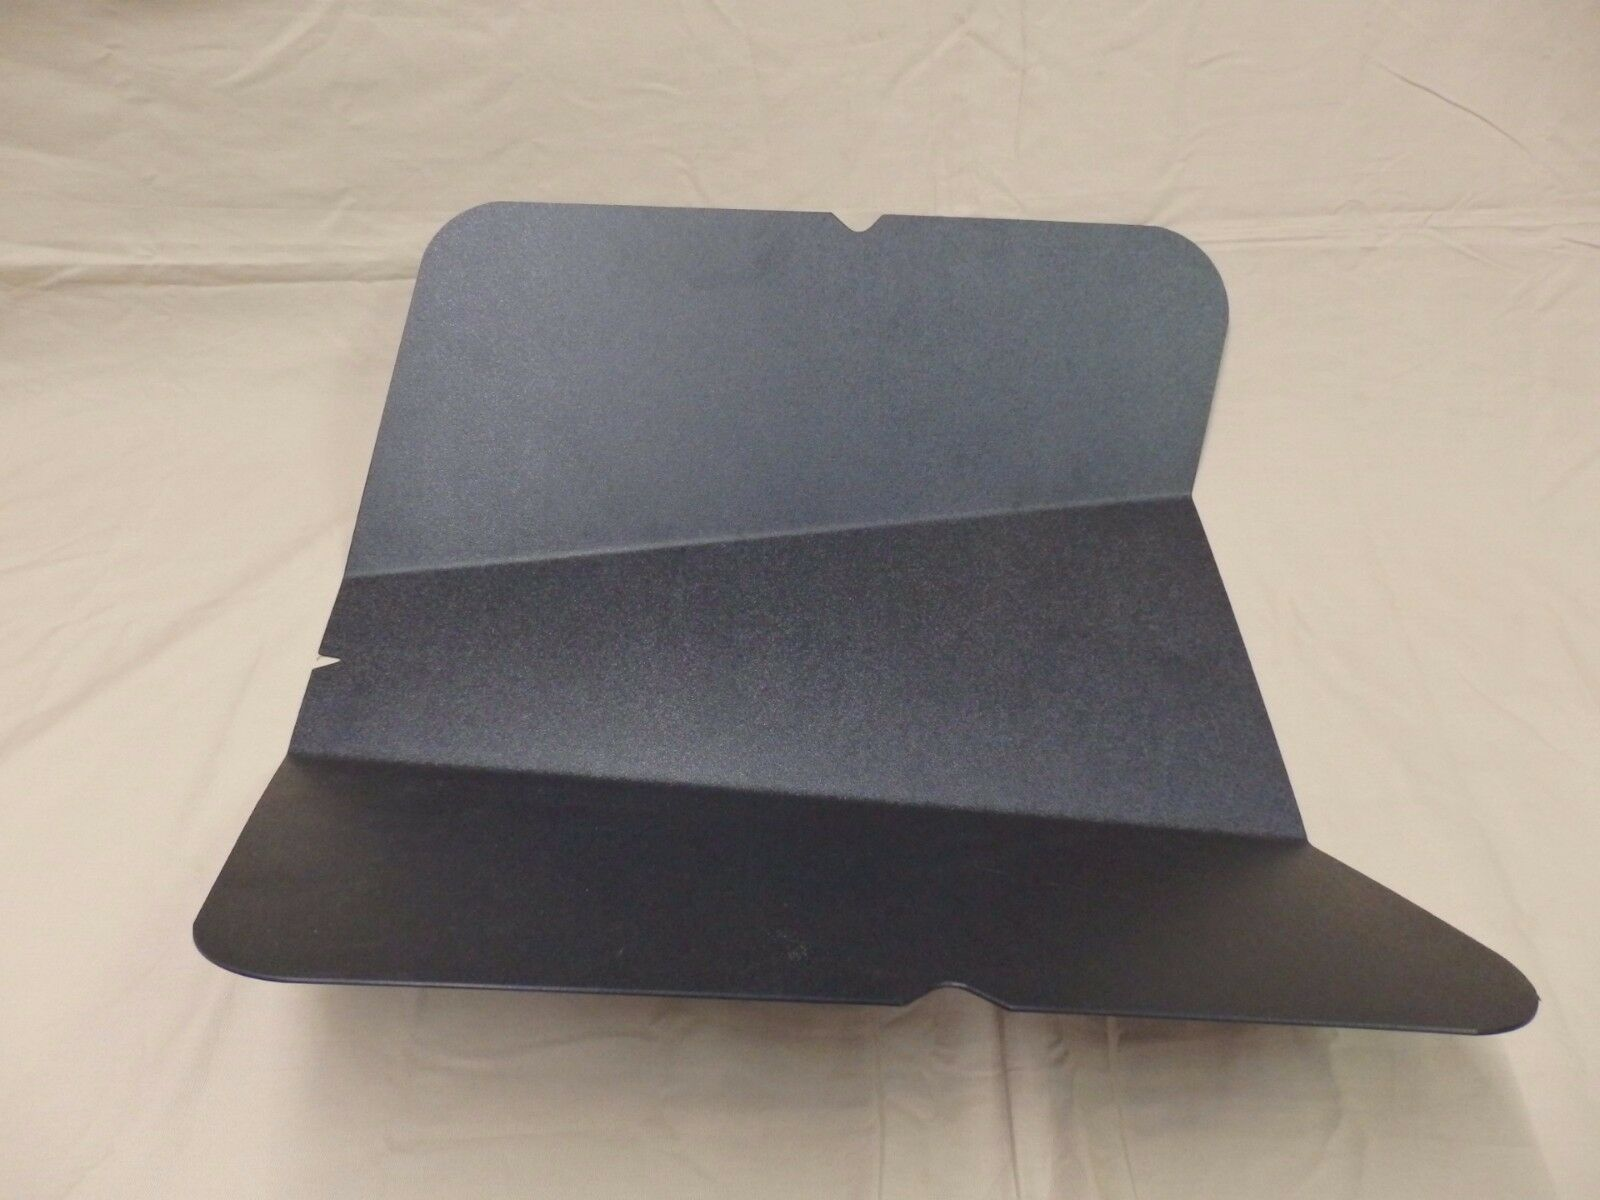 Delta Rockwell Table Saw Dust Collector Tray Heavy Duty ABS for vacuum port